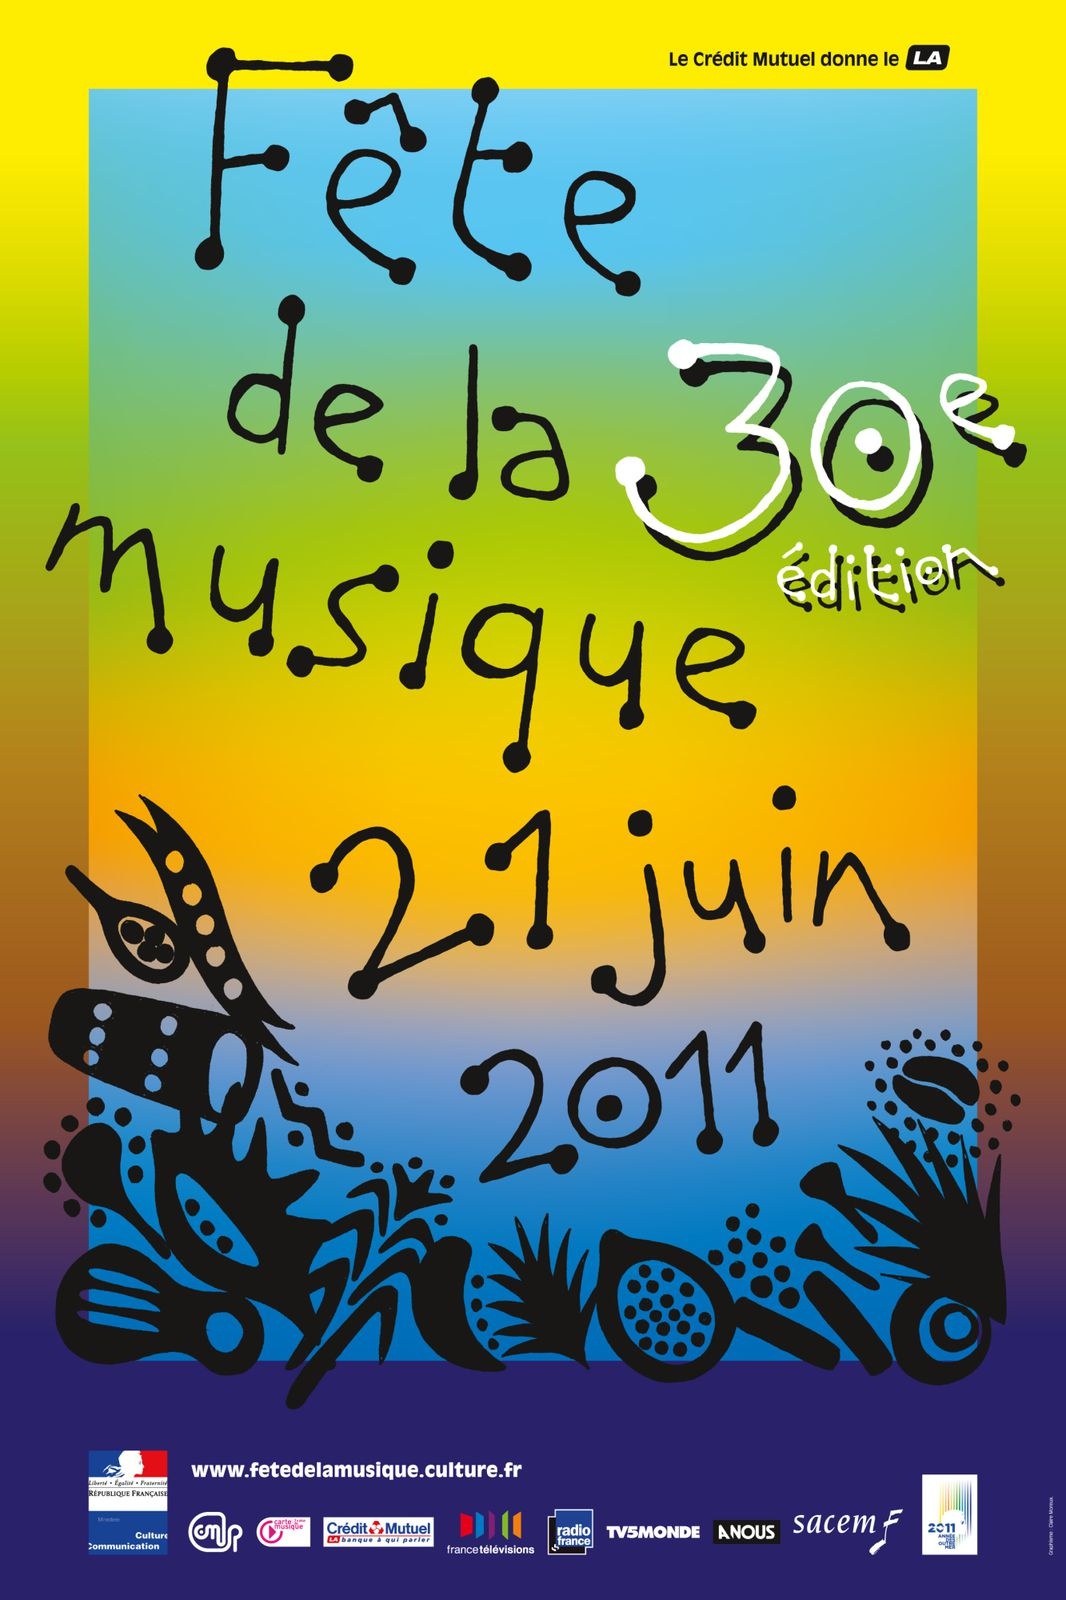 download fichier fr aff fm 2011 300dpi